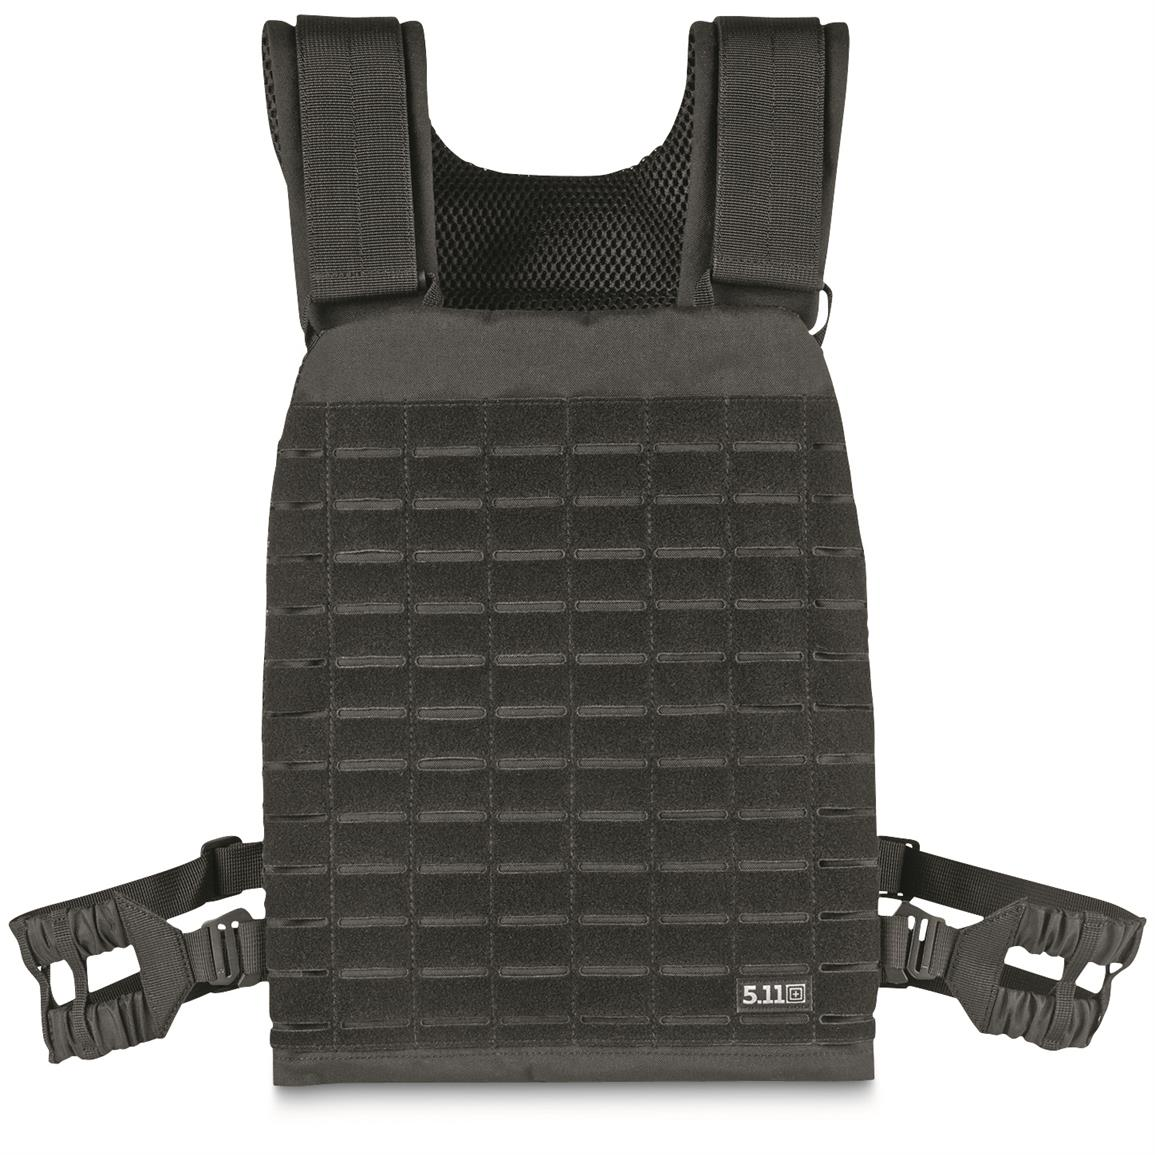 5.11 Tactical Taclite Plate Carrier, Black